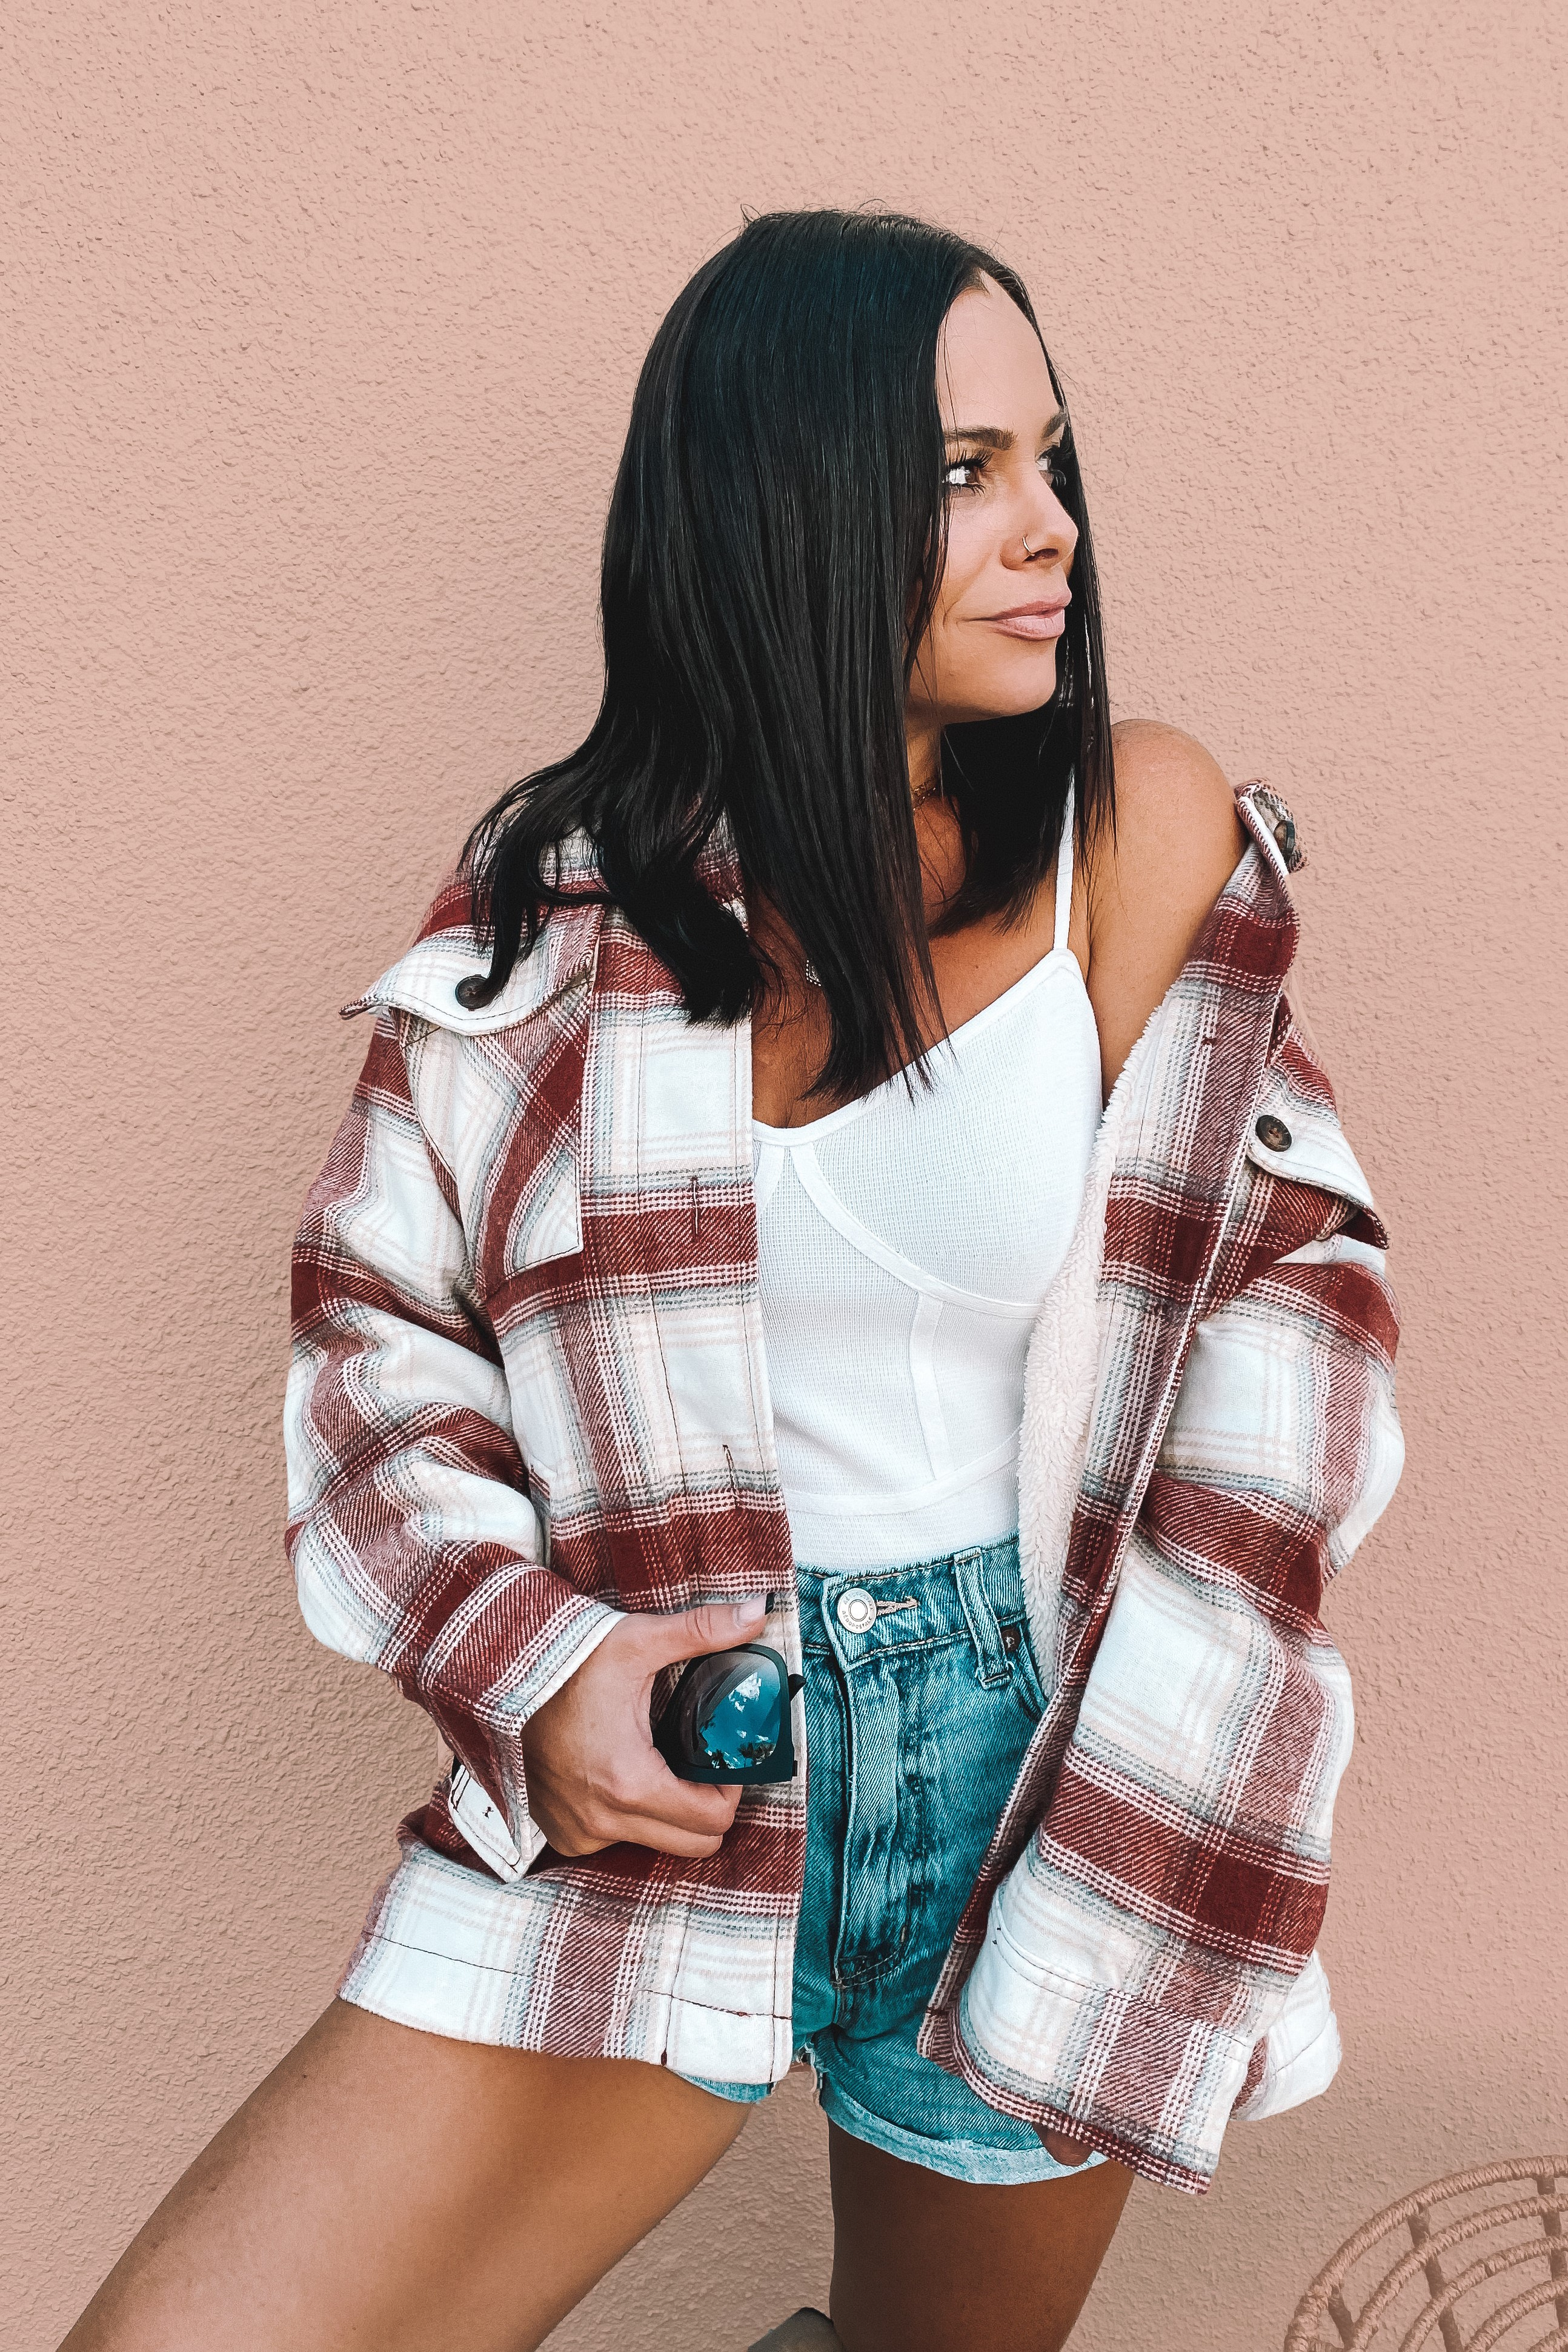 BRICK AND CREAM PLAID SHACKET. BUTTON UP. FUNCTIONAL CHEST AND SIDE POCKETS. FUR LINED CHEST AND BACK, NYLON LINED SLEEVES. 95% POLYESTER, 5% WOOL. AMANDA IS 5'7 SIZE 2, WEARING A SMALL.  S 0-4 M 4-8 L 8-12 XL 12-16